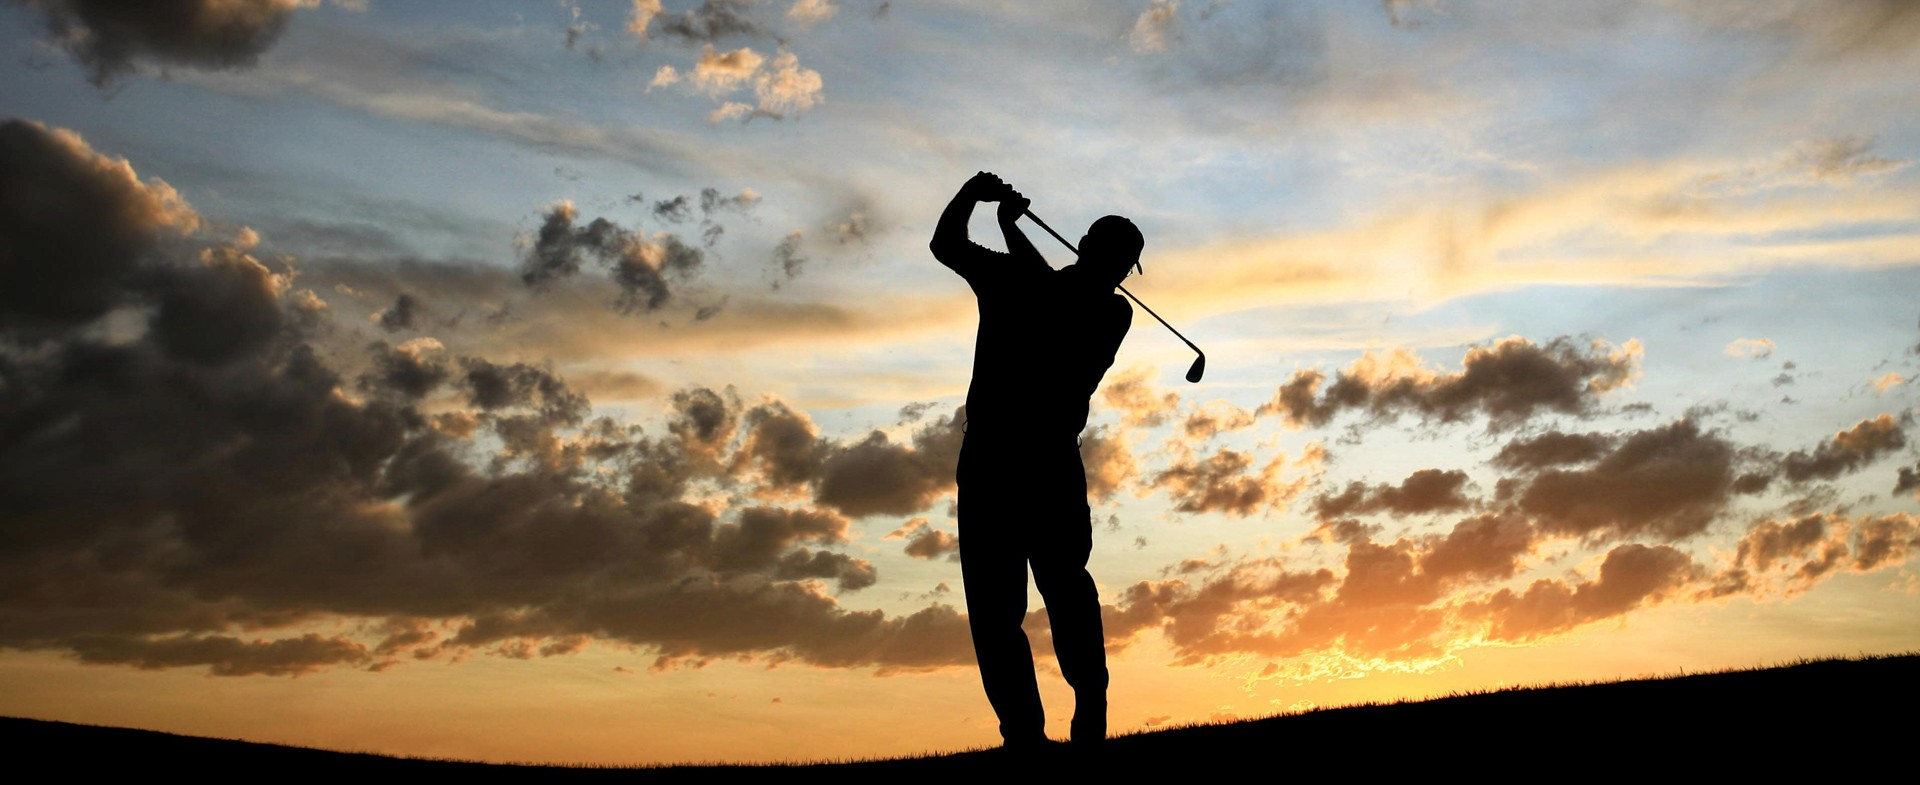 Man swinging a golf club